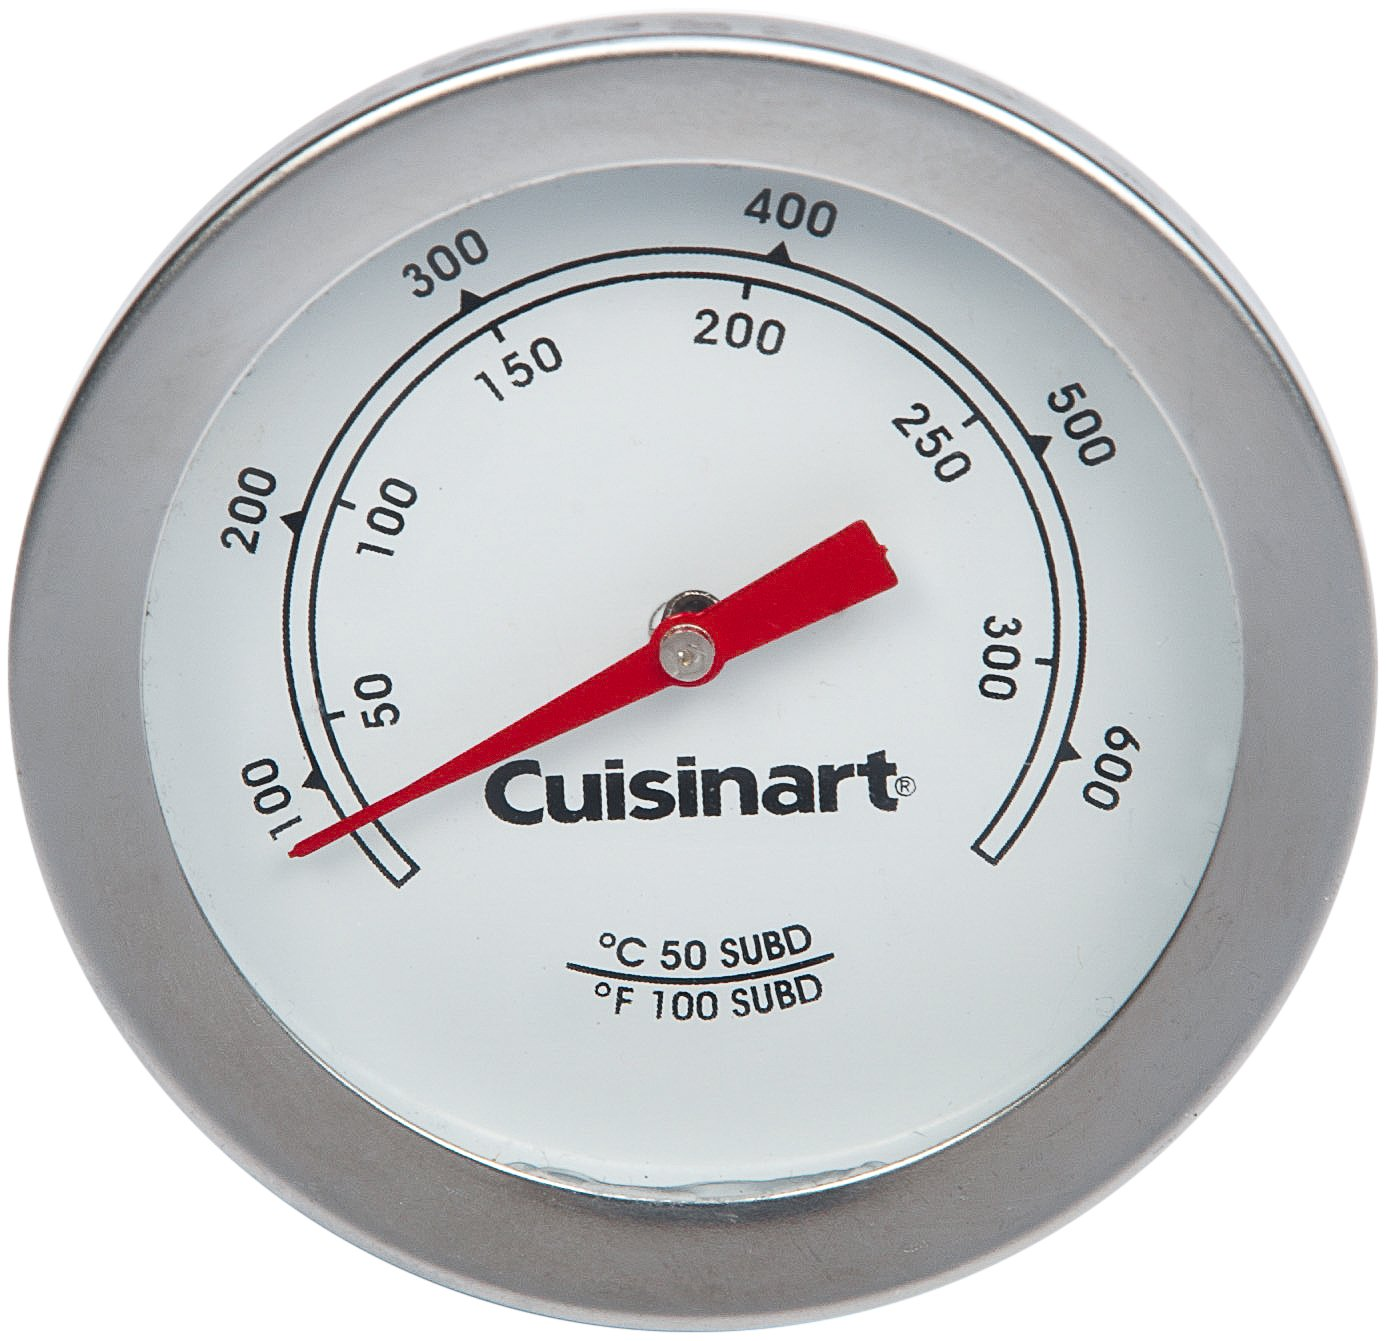 Cuisinart 20011 Replacement Temperature Gauge for CGG-200 All Foods Portable Gas Grill by Cuisinart